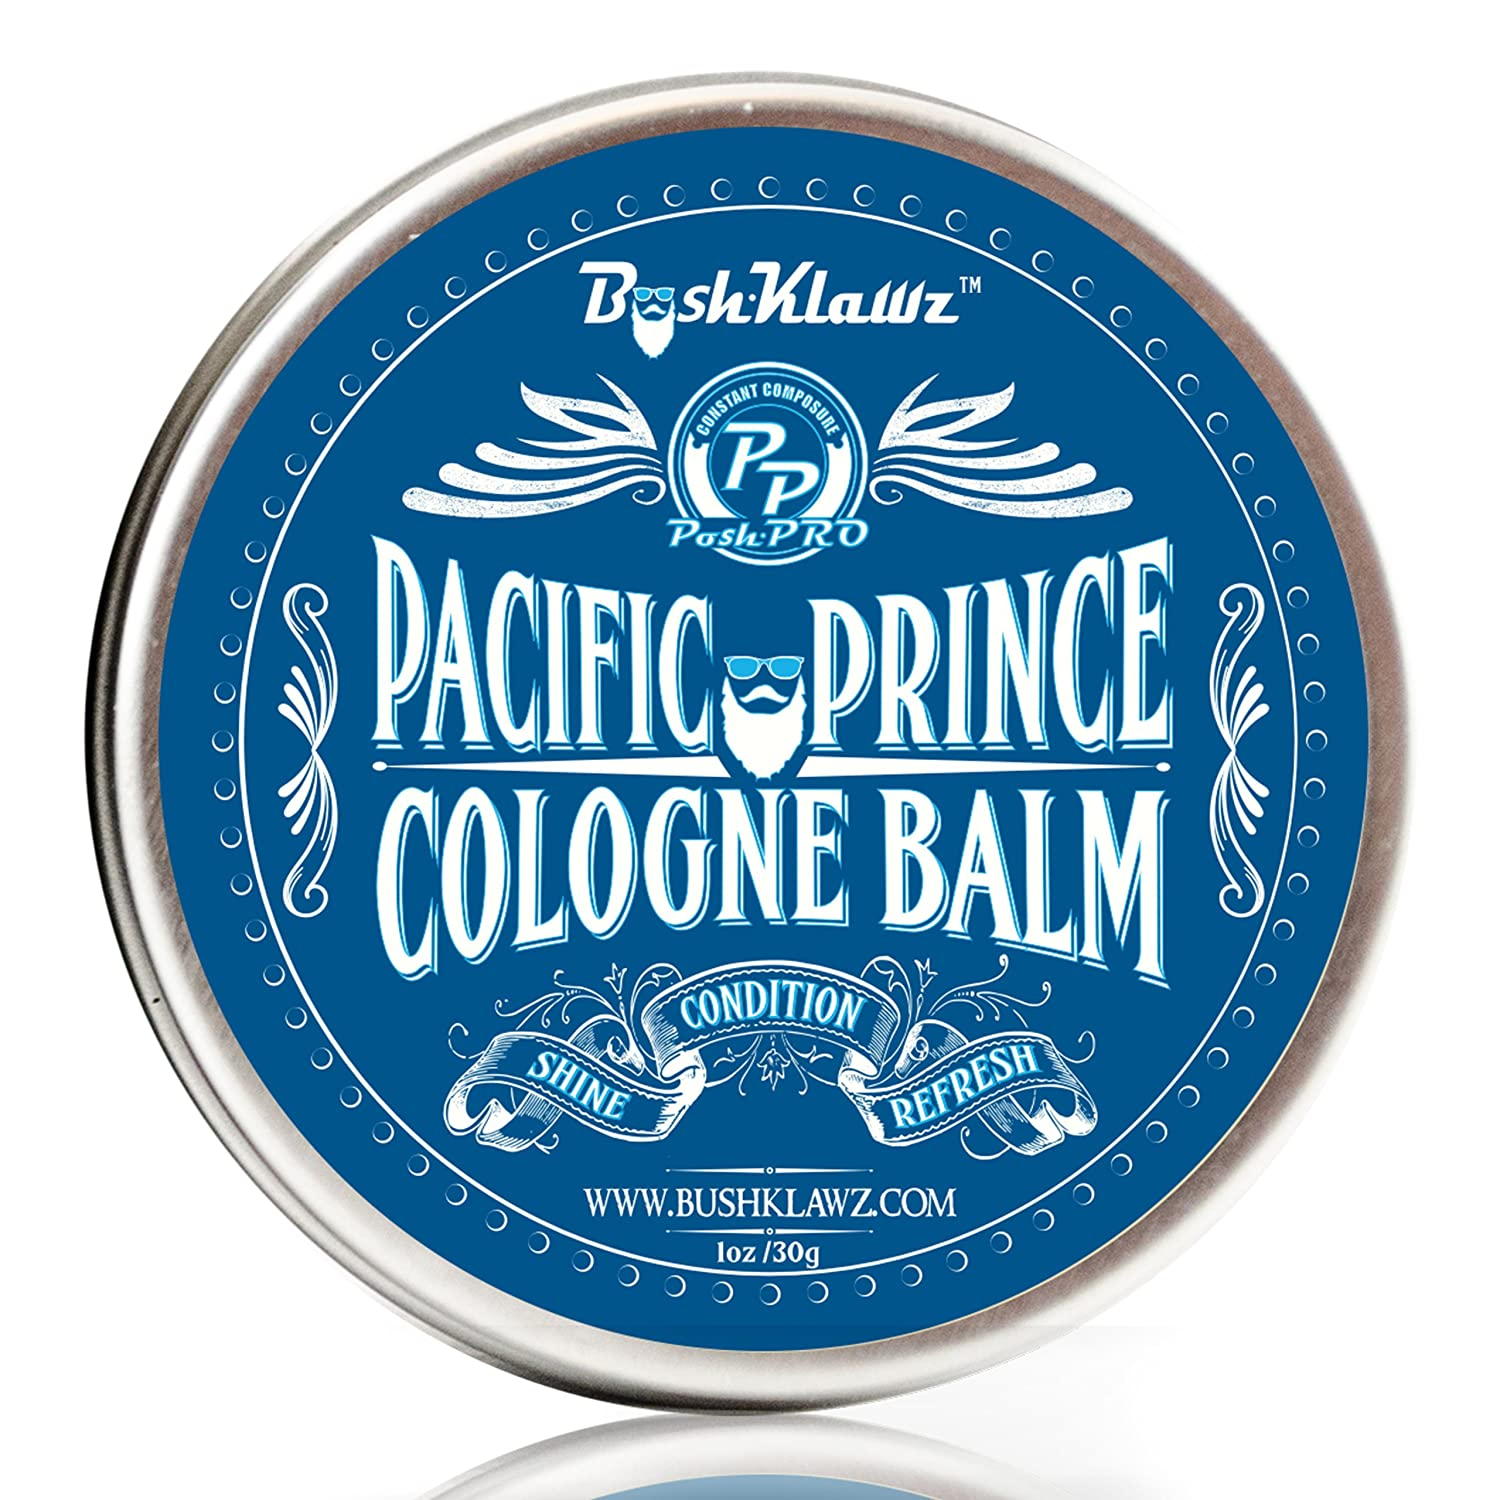 Pacific Prince Solid Cologne Balm Fragrance - Fresh Balanced Midnight Ocean Breeze Aquatic Scent for Men - Best Aquatic Scent Solid Alcohol Free Cologne for travel Best Gift for Men